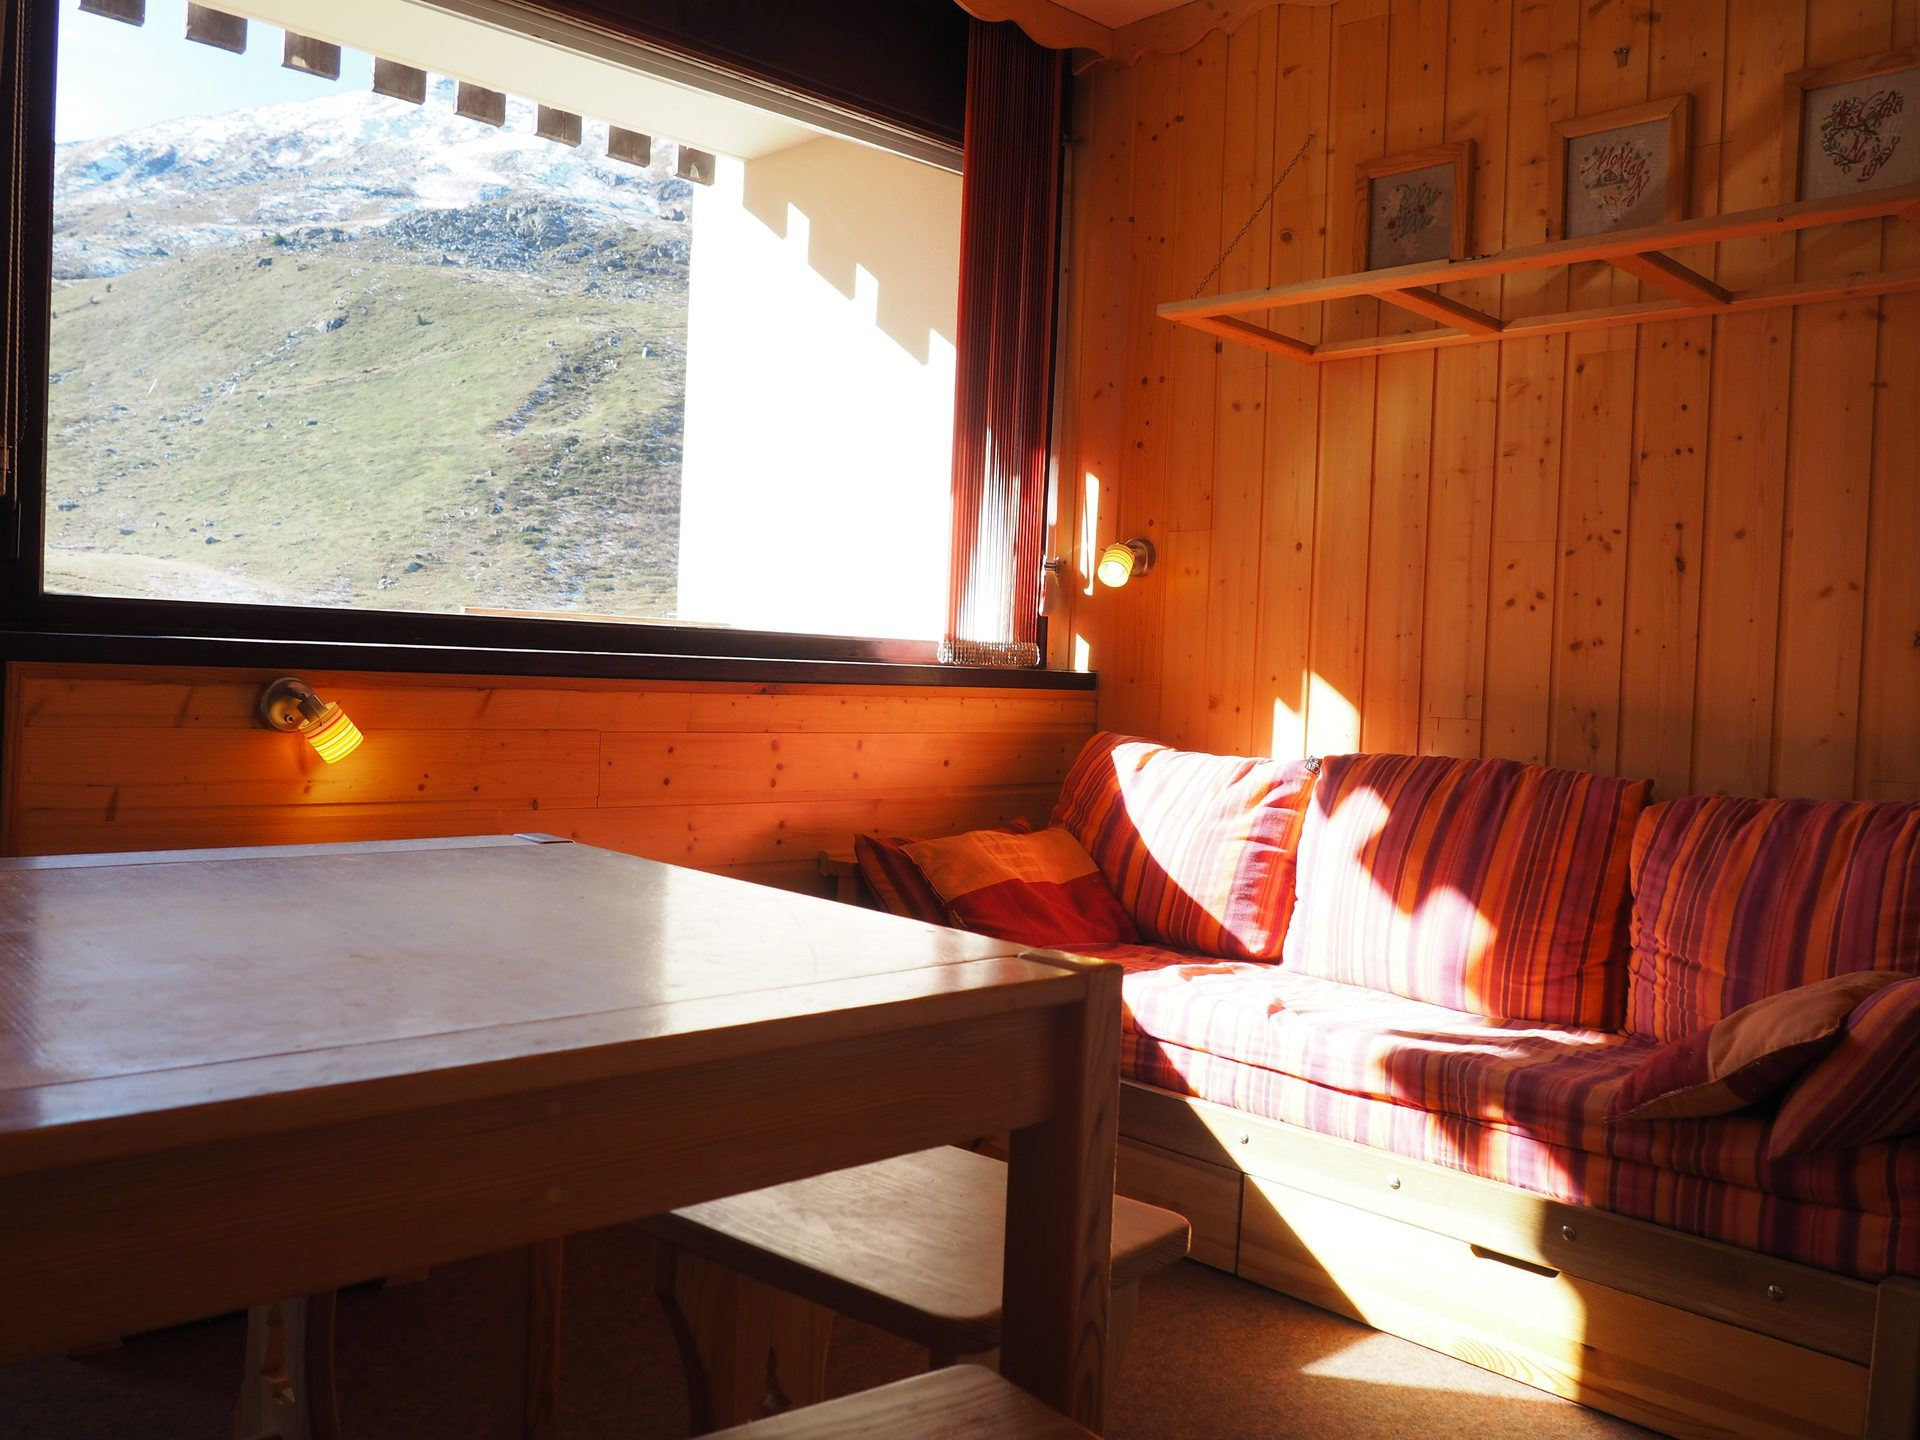 4 Pers Studio, 150m from the slopes / ASTERS A1 329